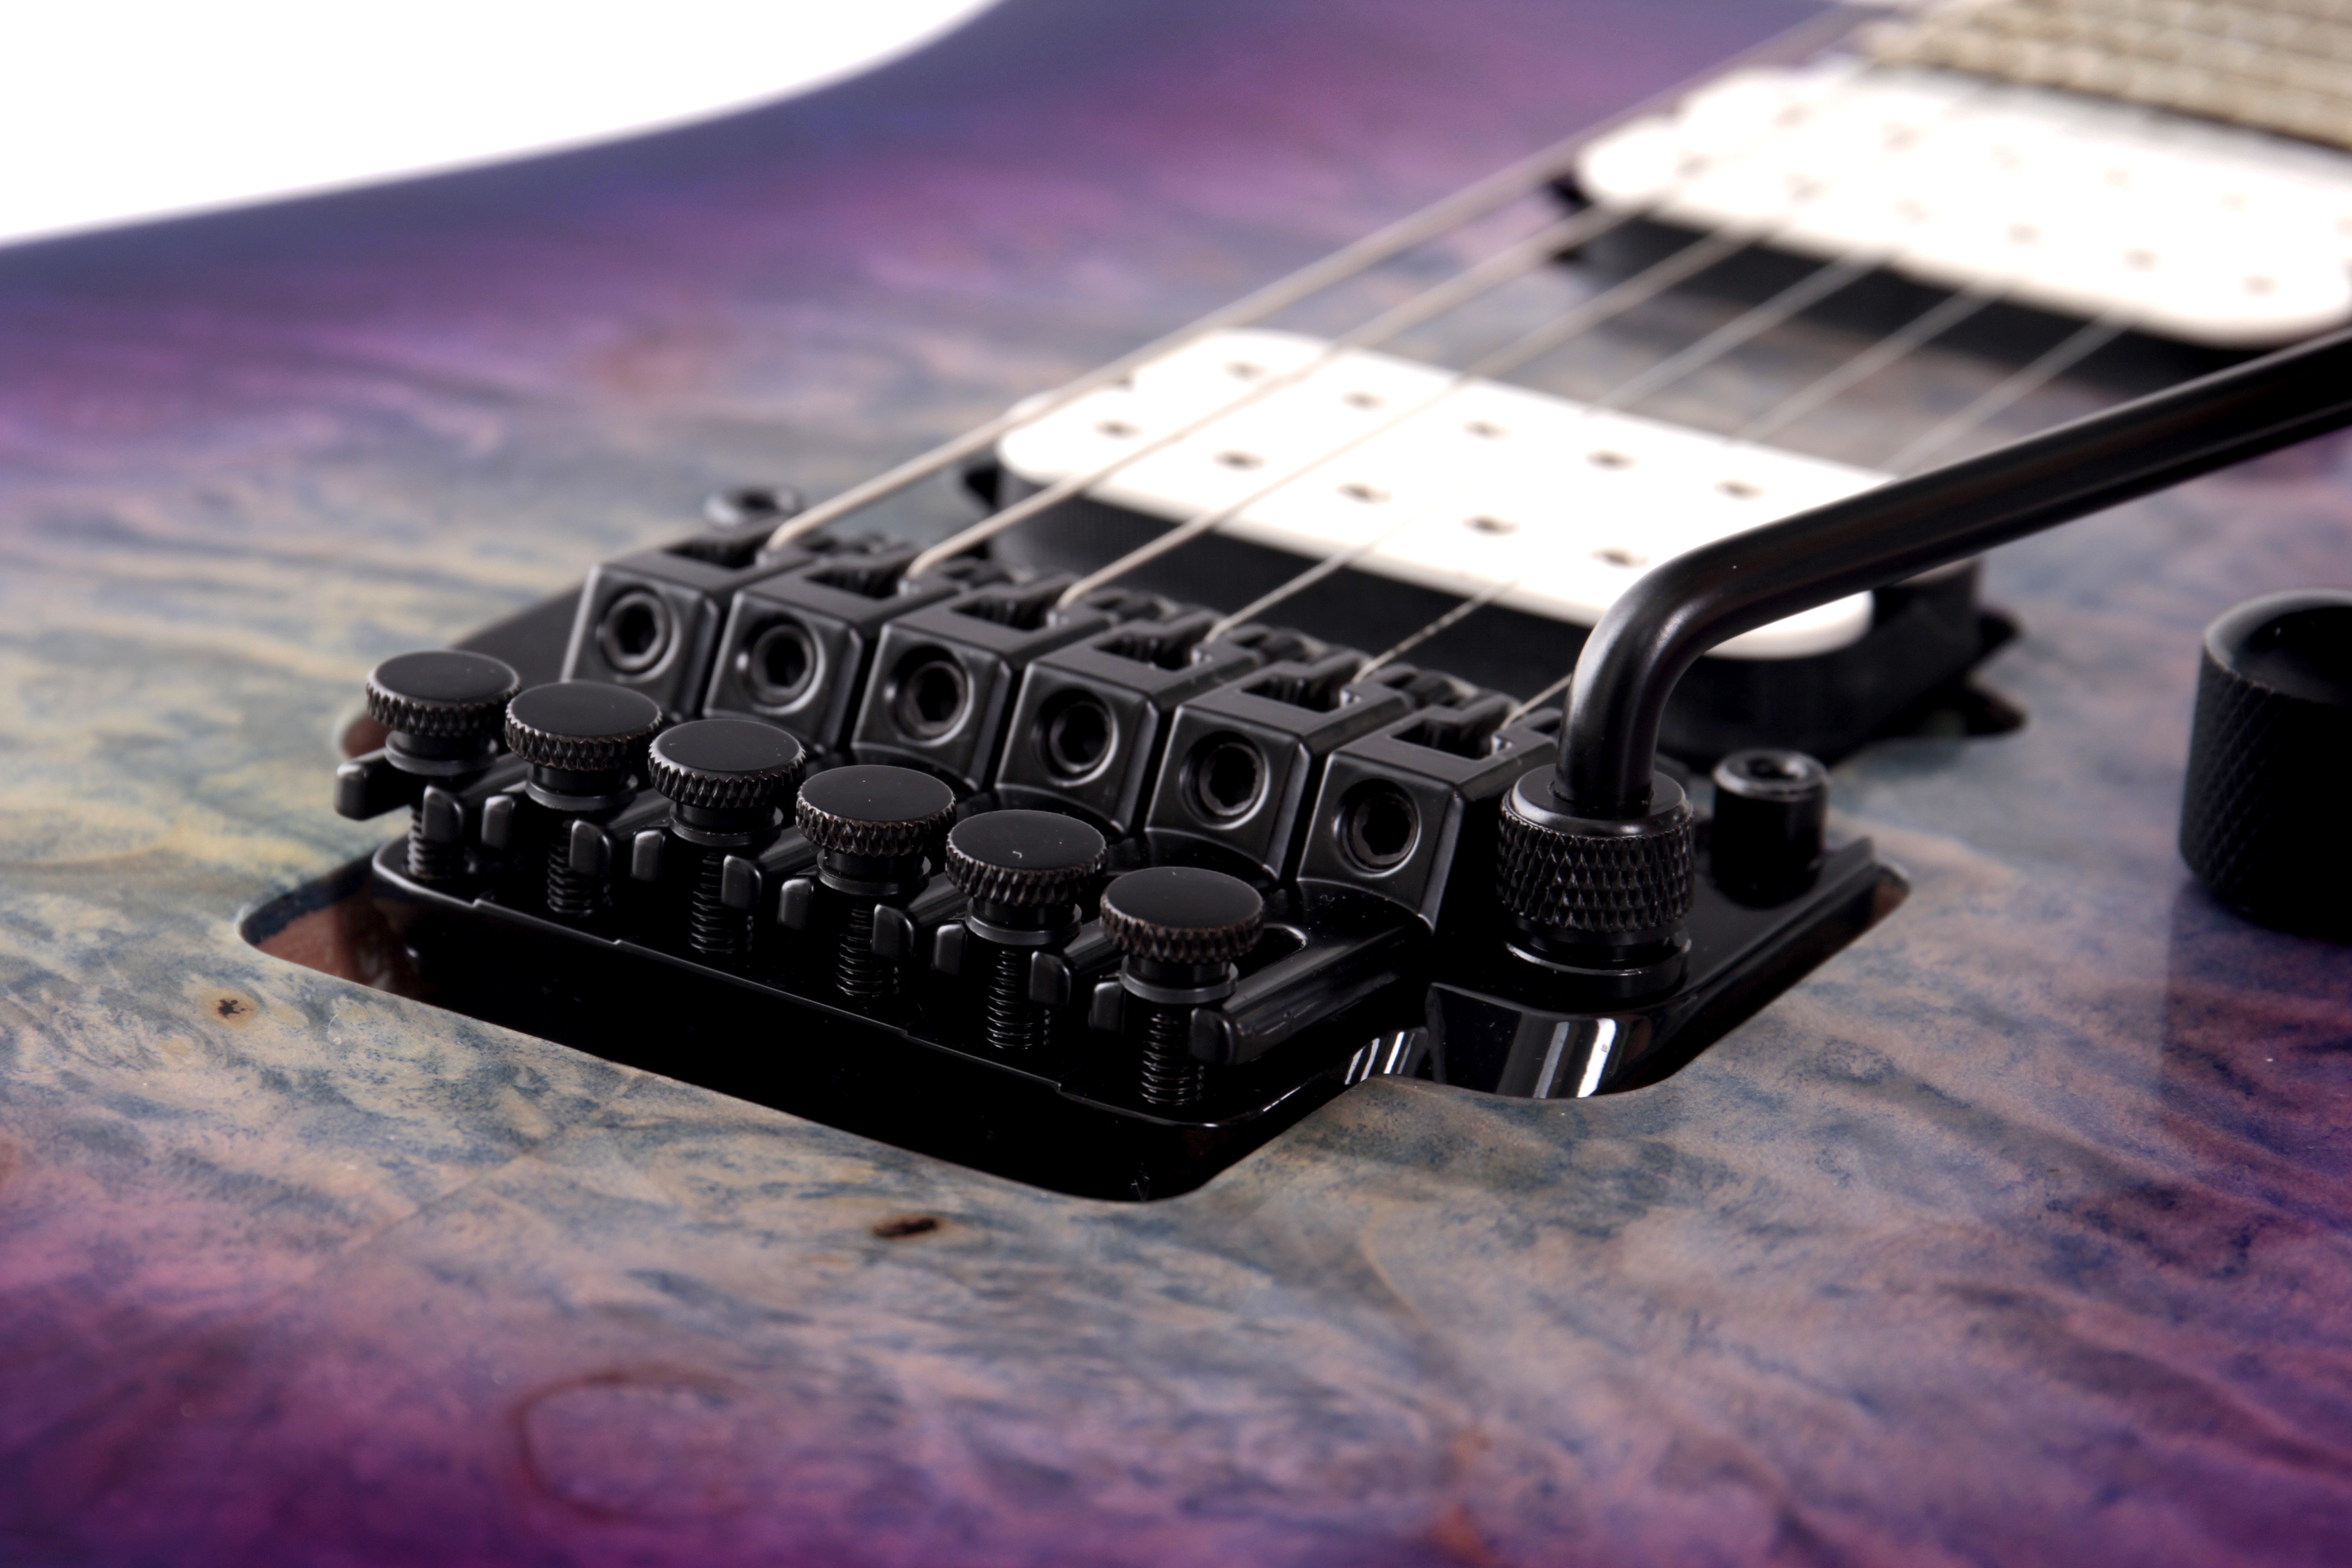 Ibanez Edge Floyd Rose tremolo bridge on an Ibanez RG guitar